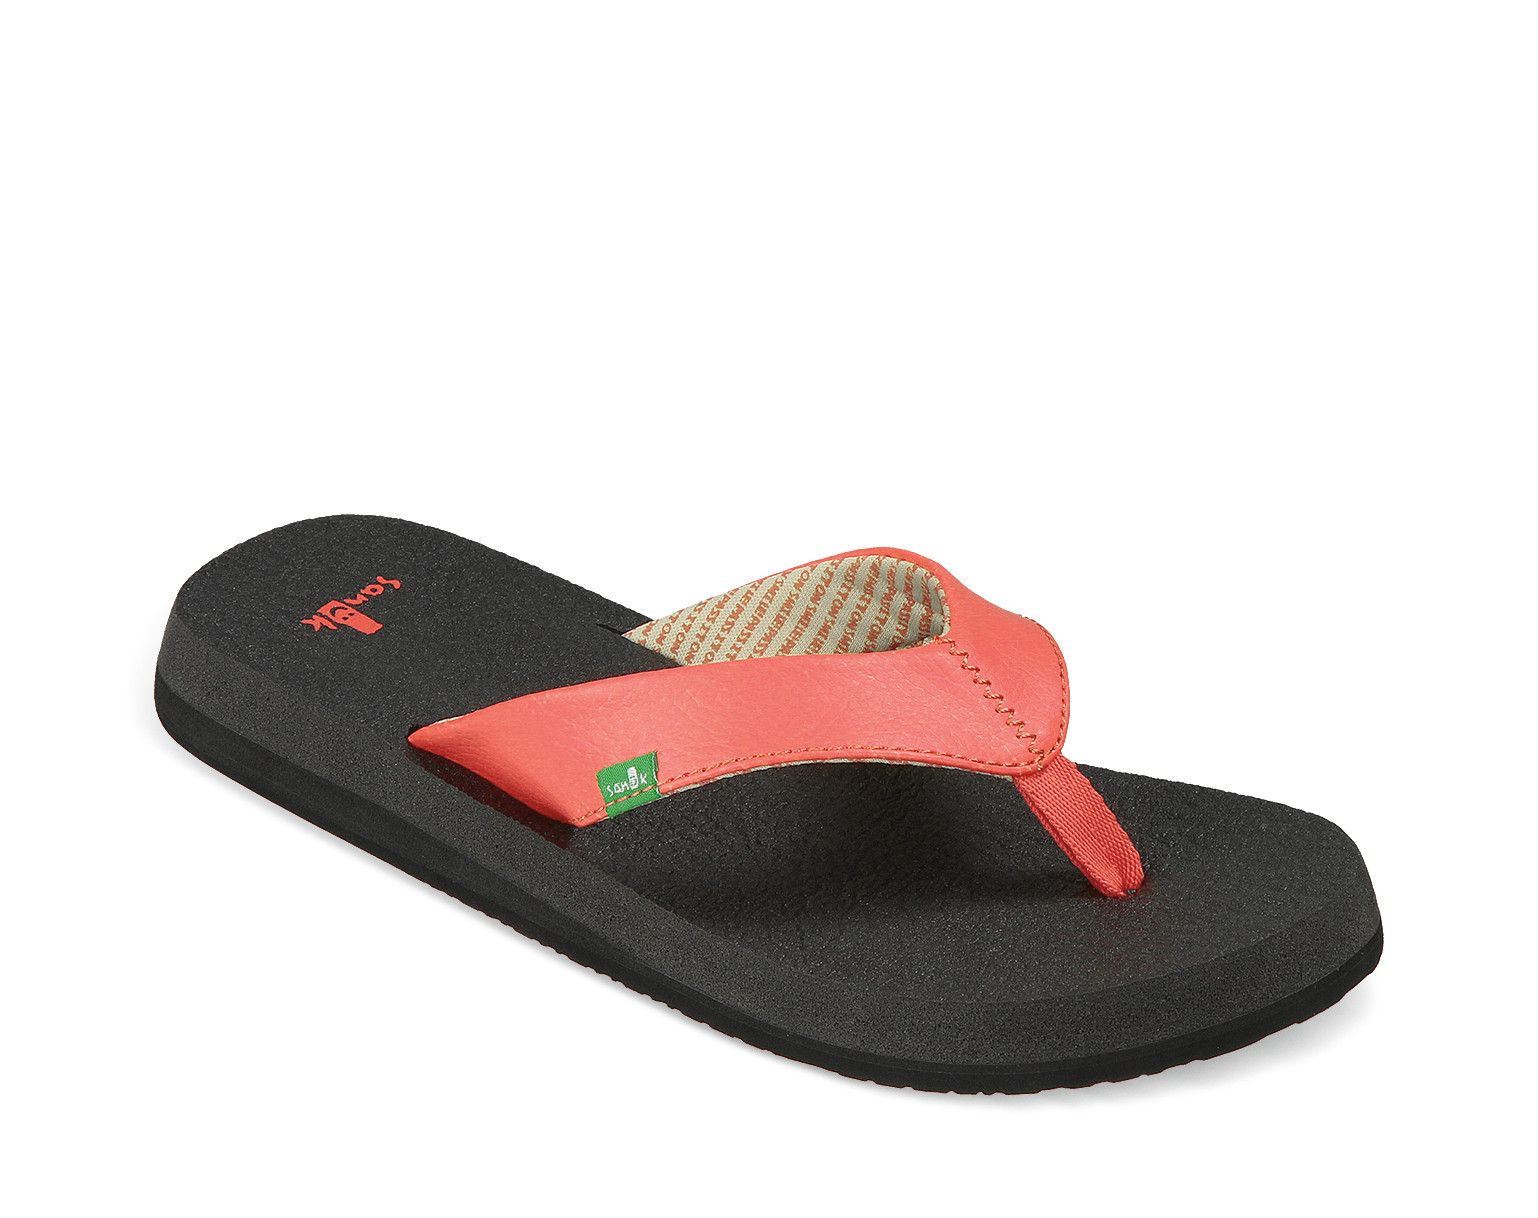 SANUK- Women's Yoga Mat Sandal Watermelon